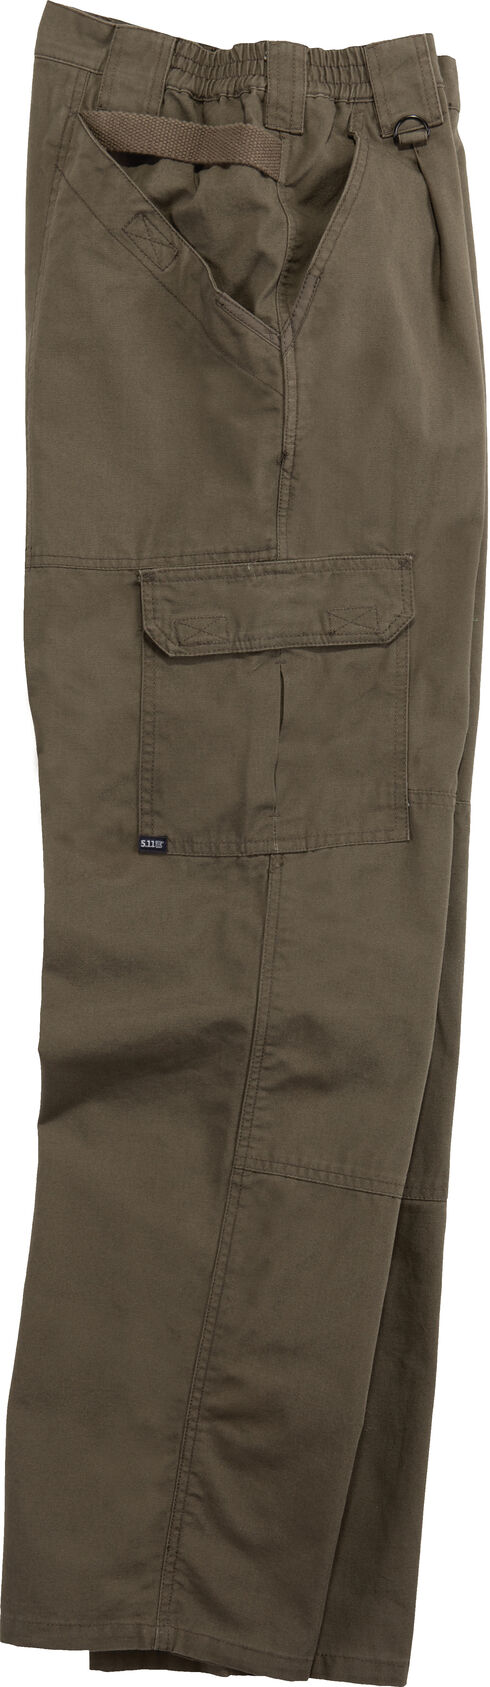 5.11 Tactical Pants, Dark Brown, hi-res